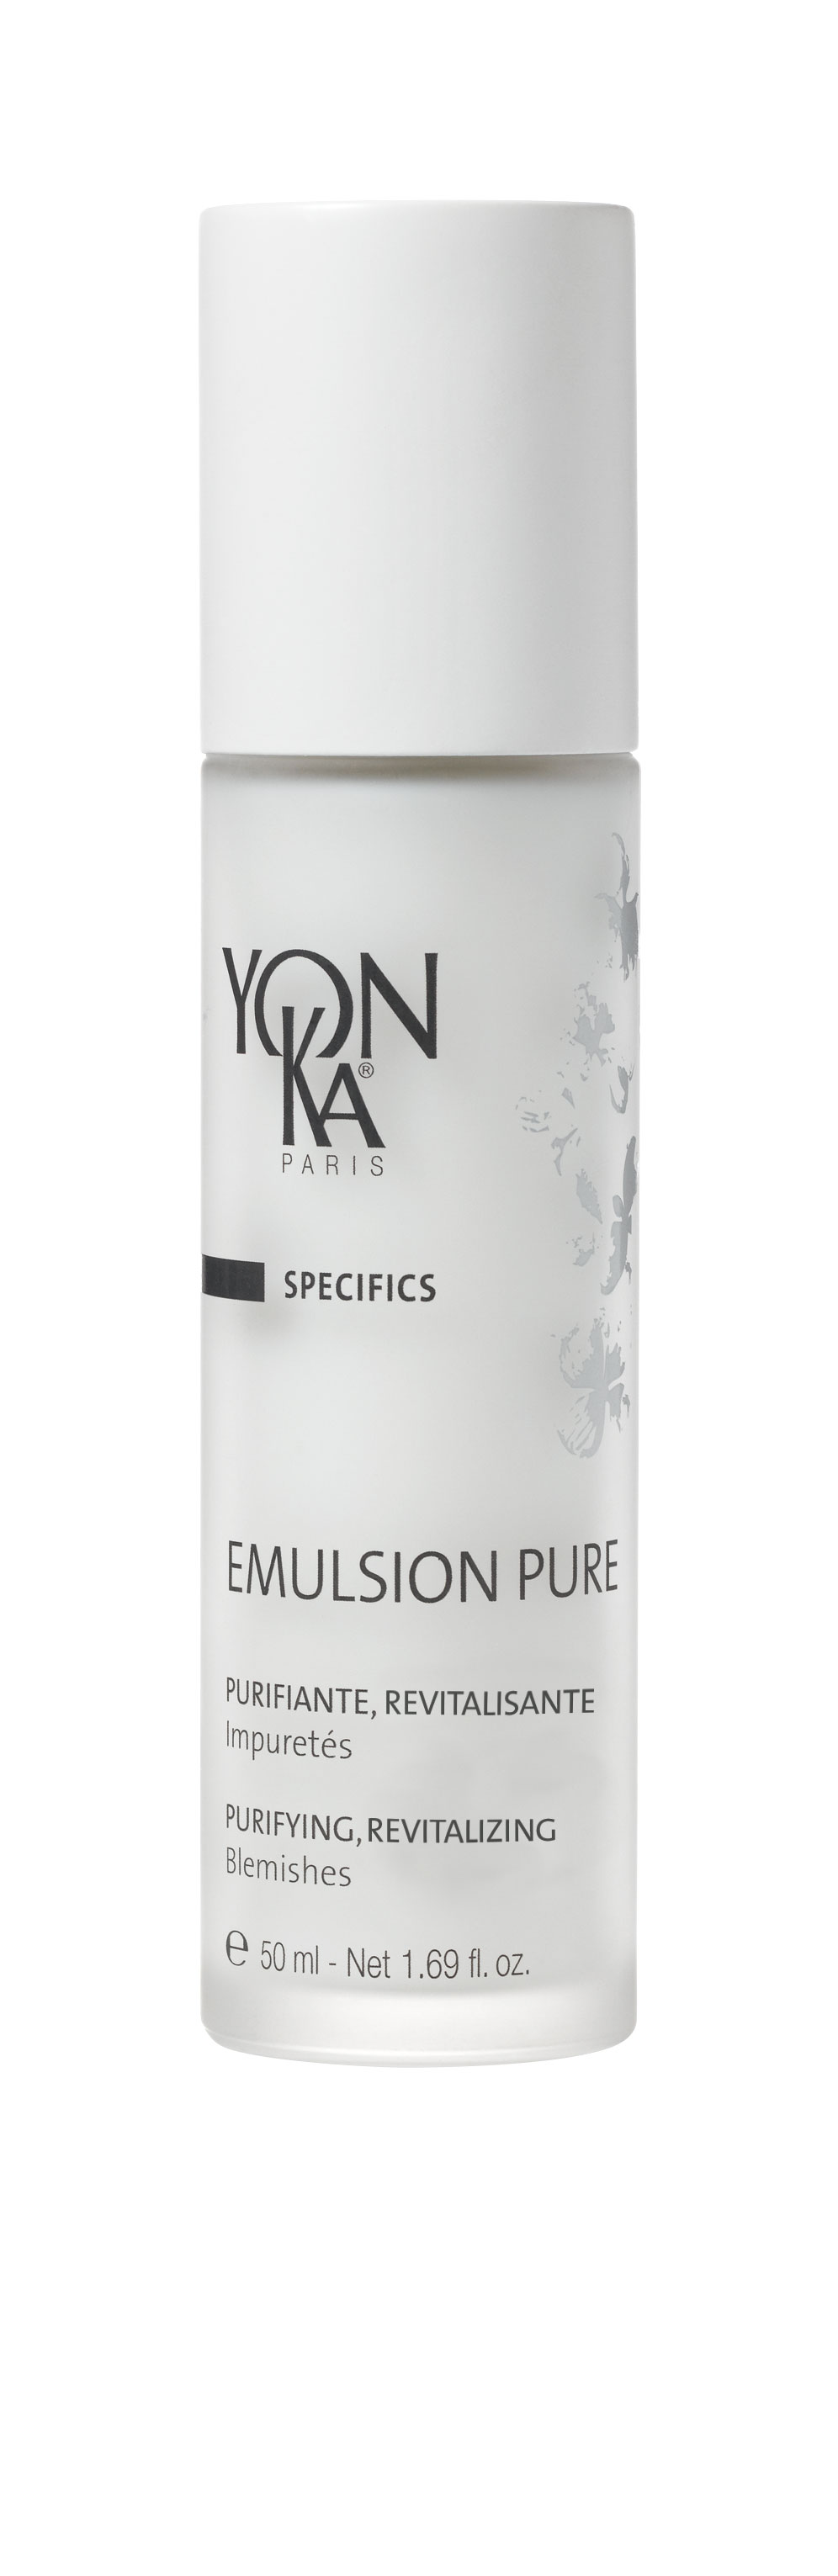 Emulsion Pure (50ml)